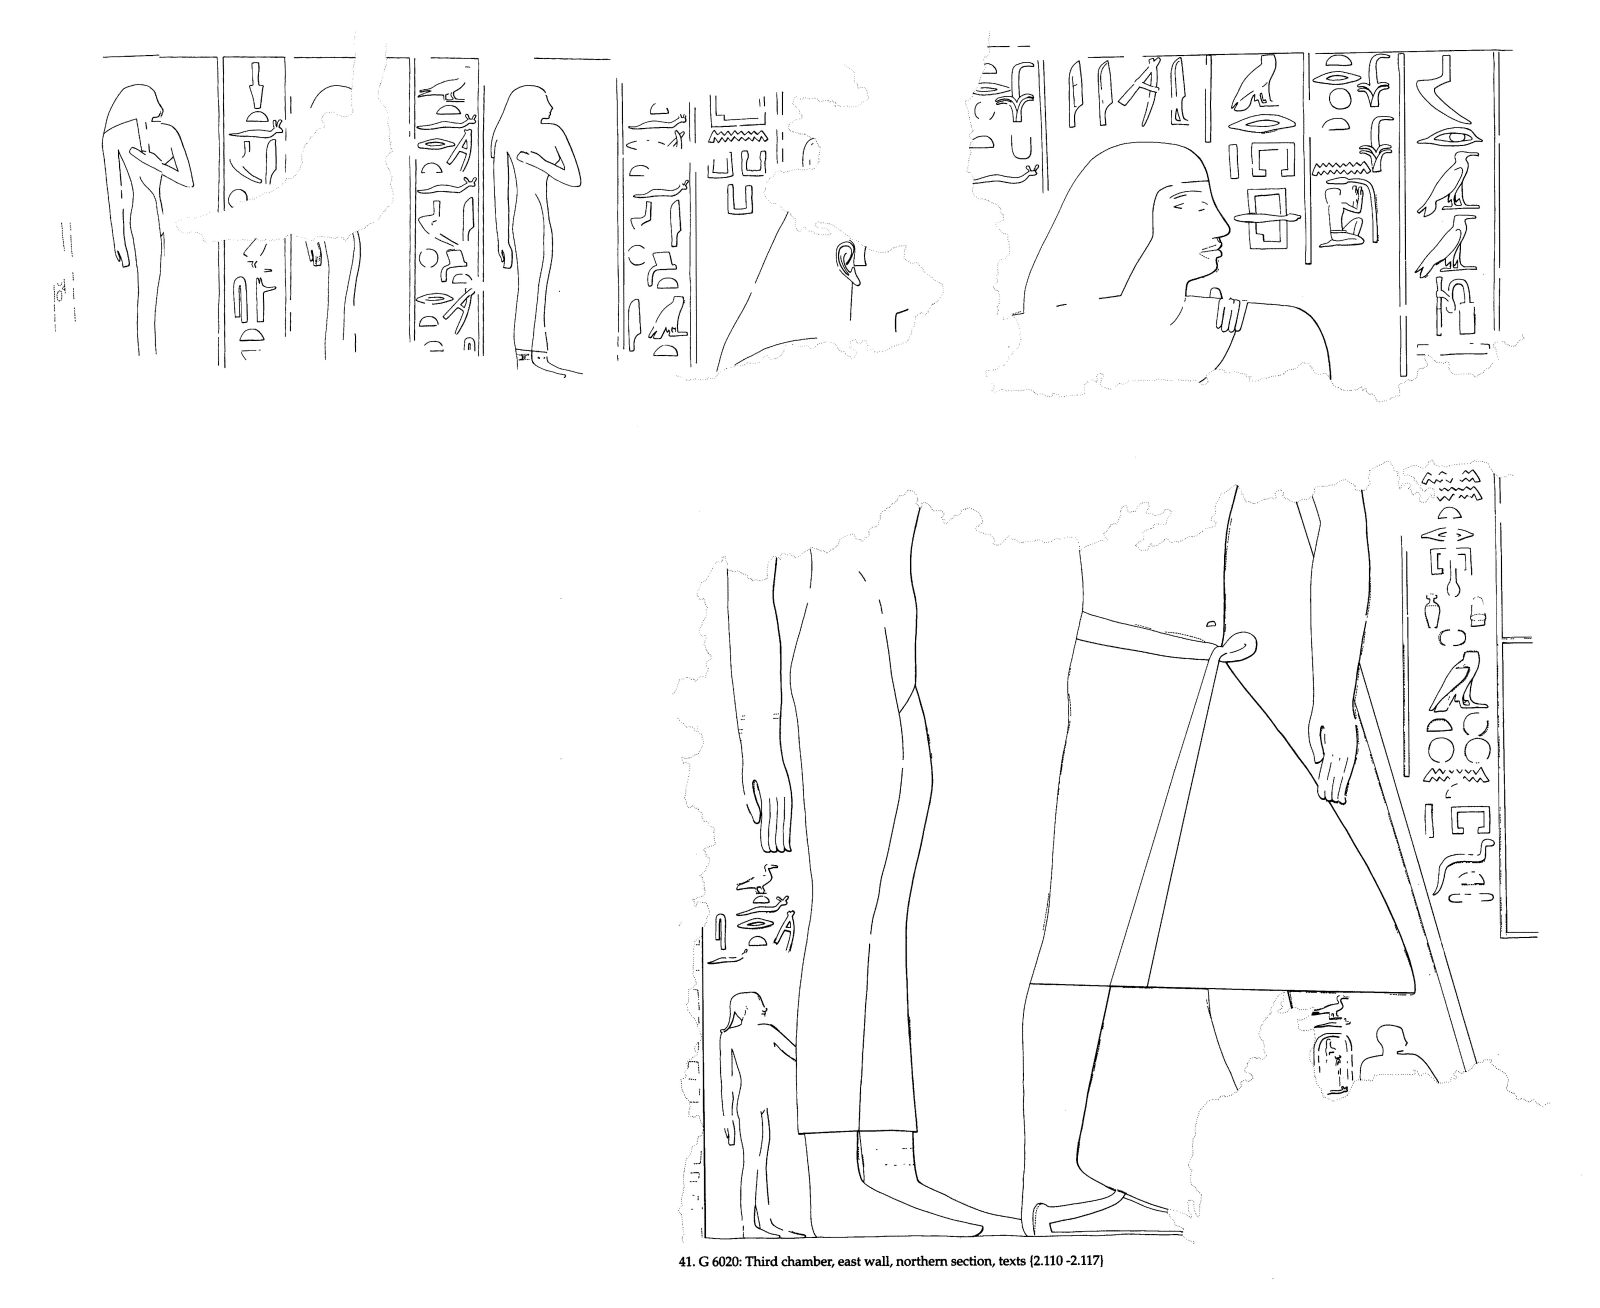 Drawings: G 6020: relief from third chamber, E wall, N section